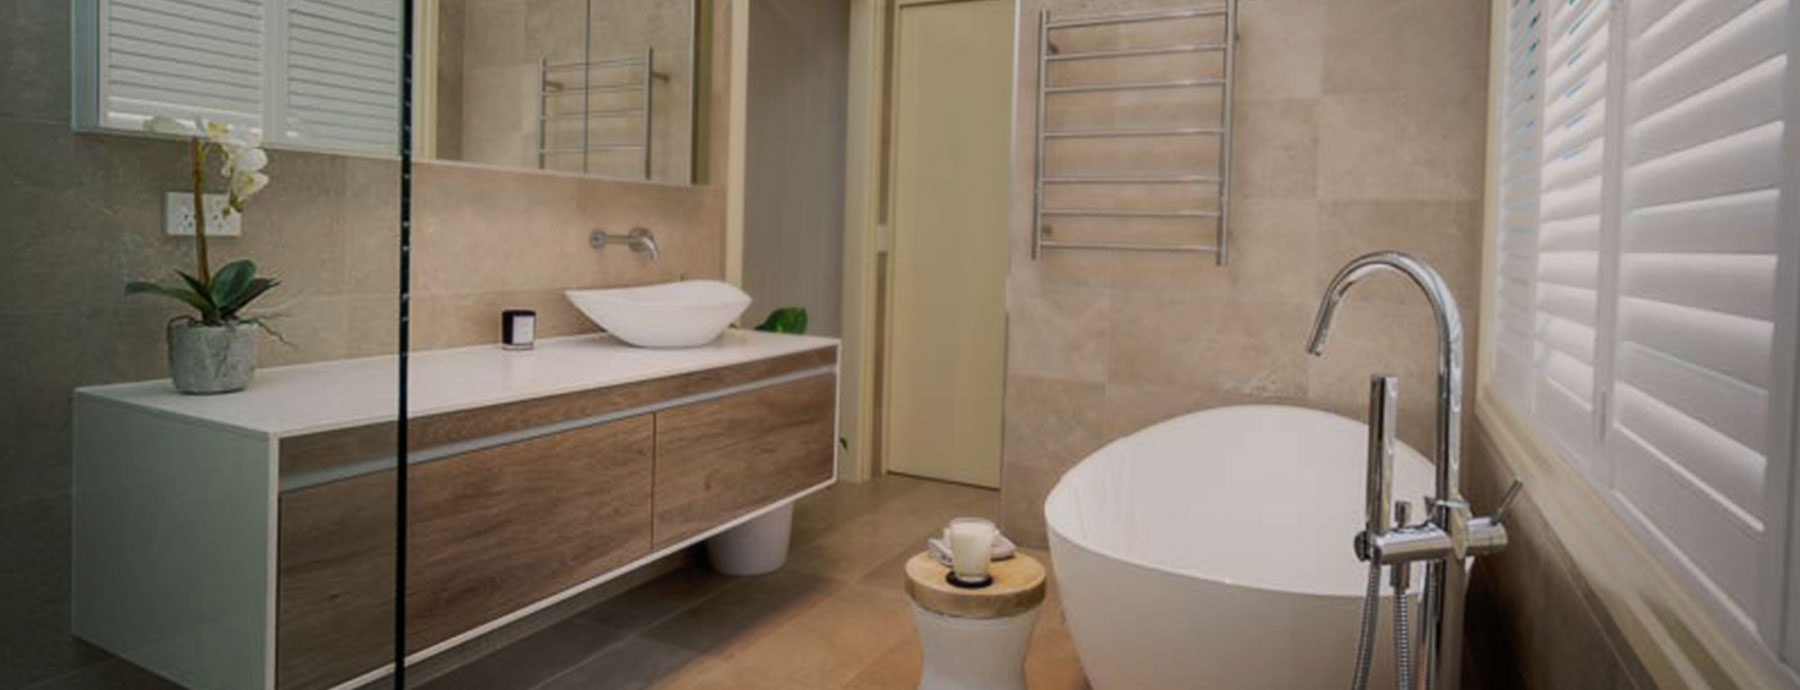 KBDi 2019 Qld Bathroom Awards Finalist Large Bathroom